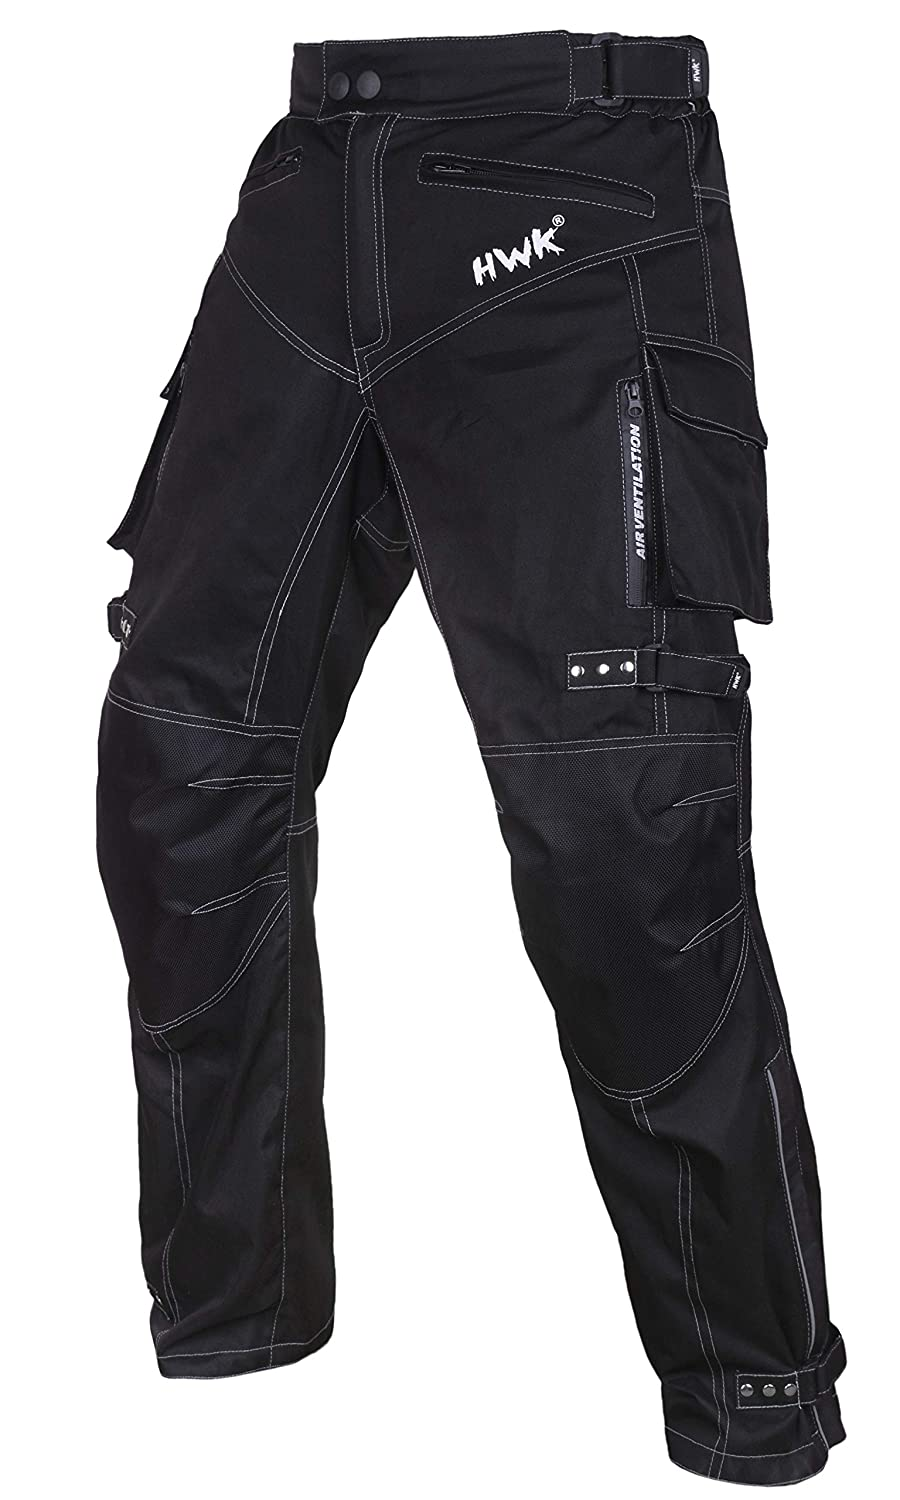 Motorcycle Pants For Men Dualsport Motocross Motorbike Pant Riding Overpants Enduro Adventure Touring Waterproof CE Armored All-Weather (Waist34''-36'' Inseam34'') HWK S1